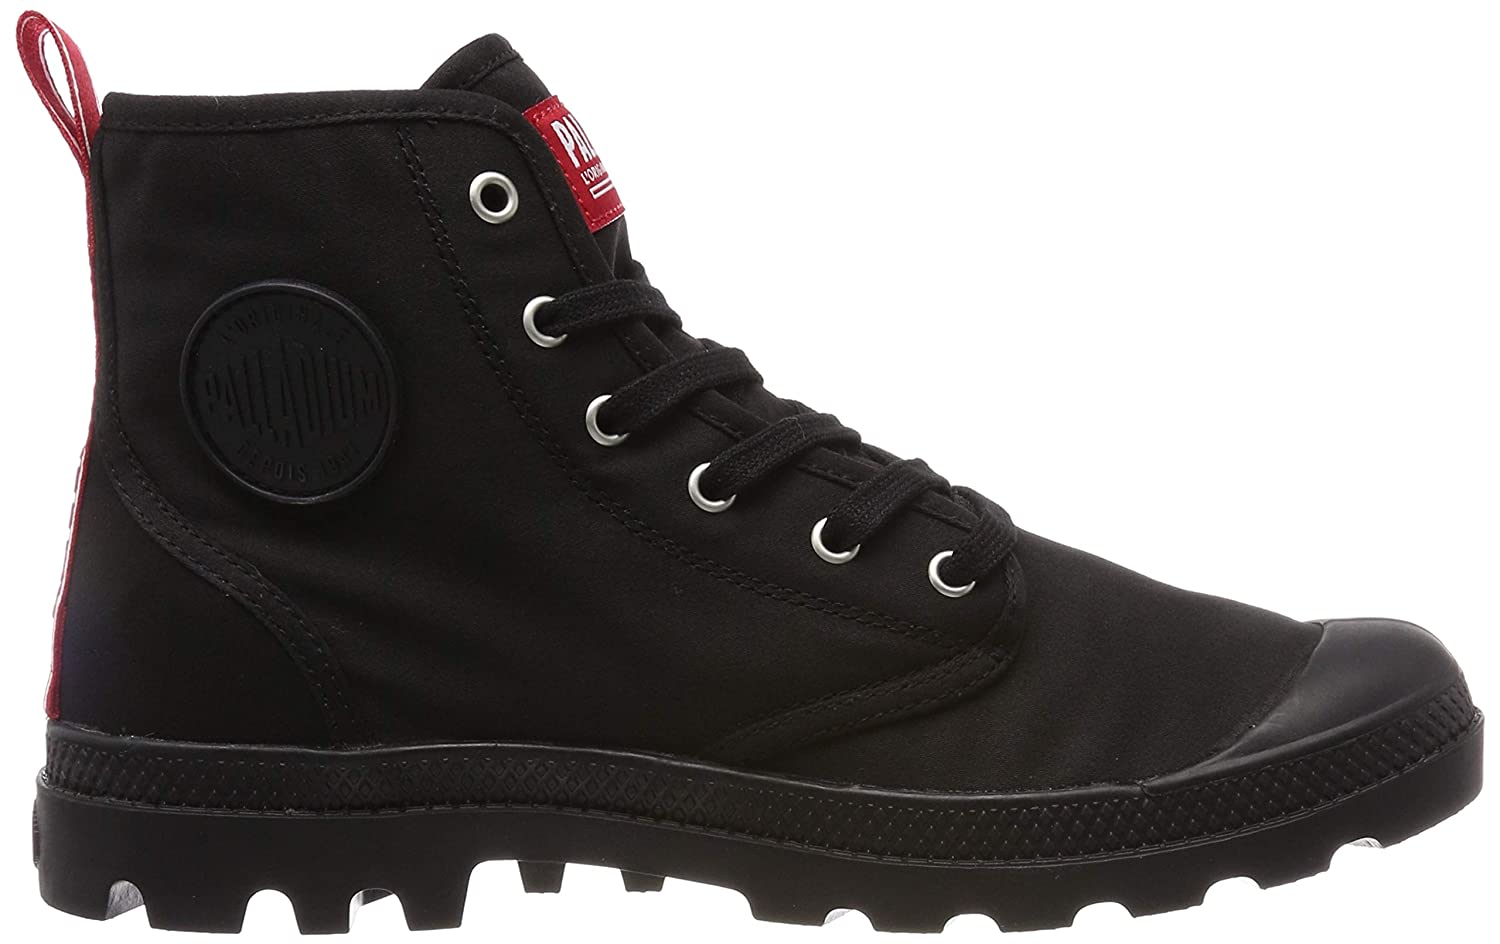 Pampa Hi Bottines Palladium Adulte Souples Mixte DareBottesamp; Yymb7fgI6v